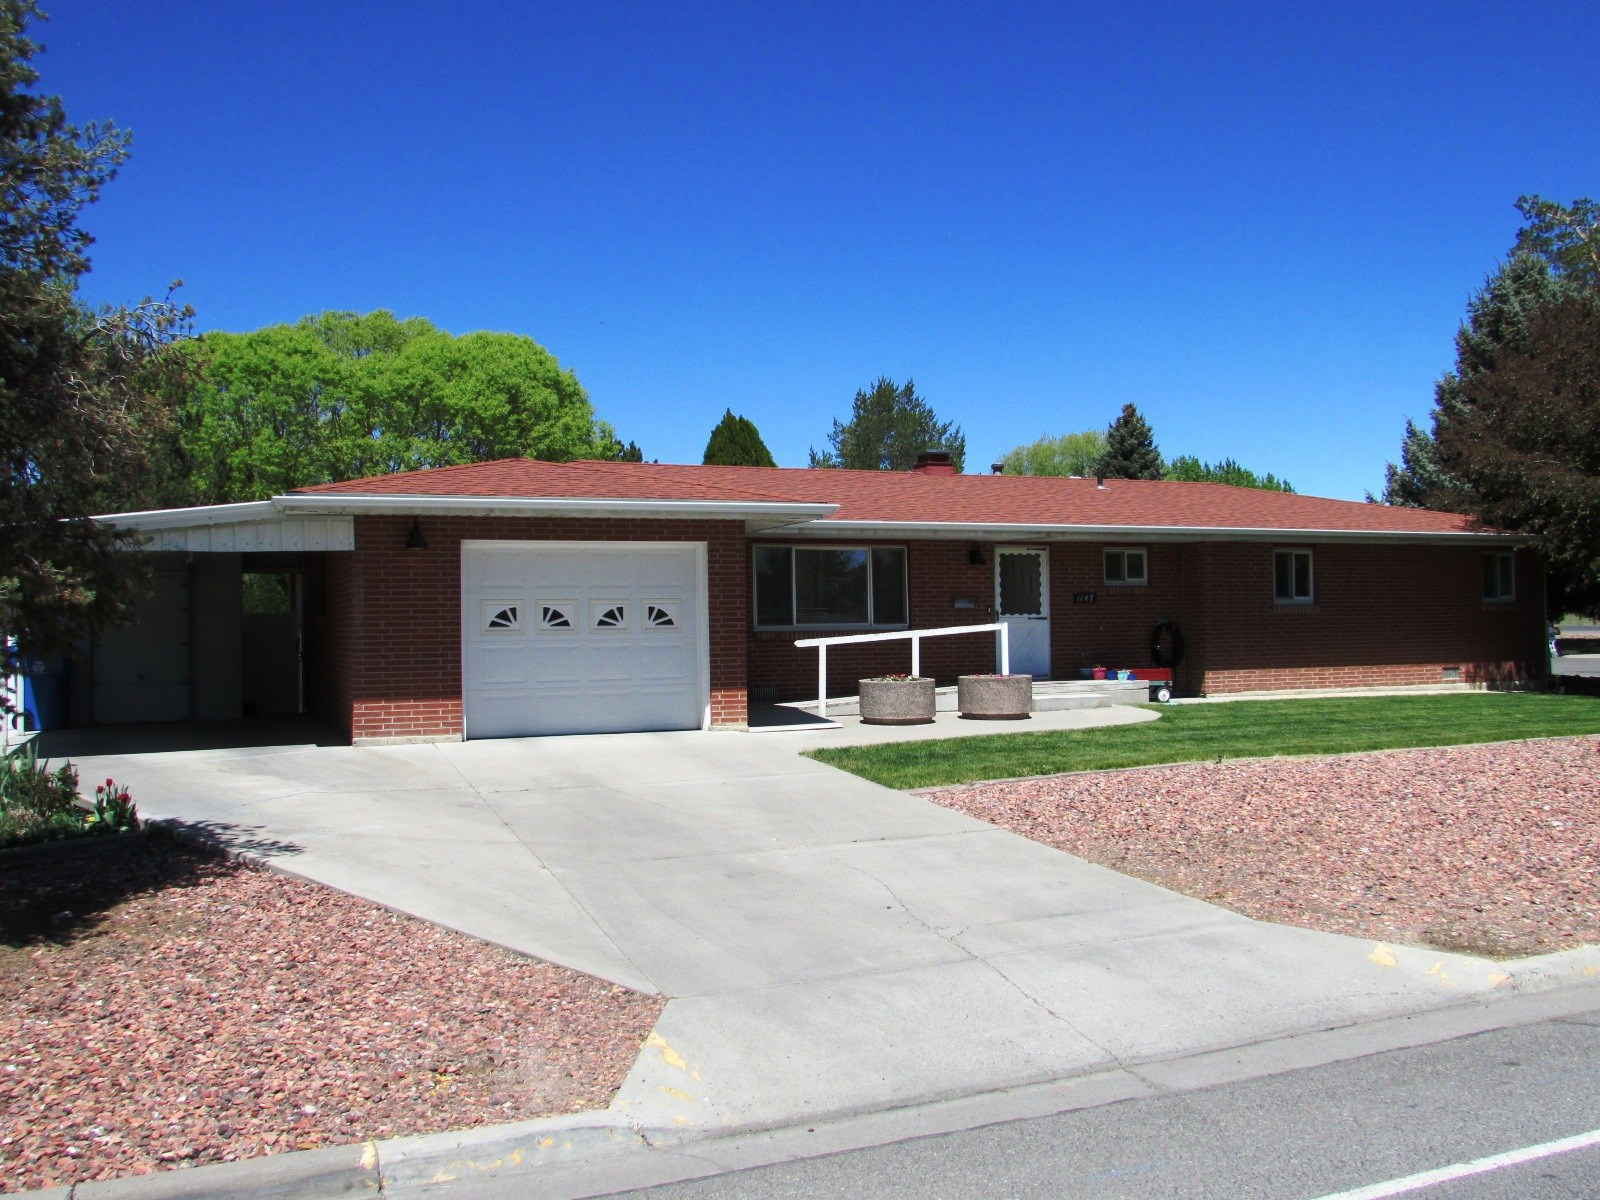 For Sale Residential/Recreational CO Home Near Golf Course